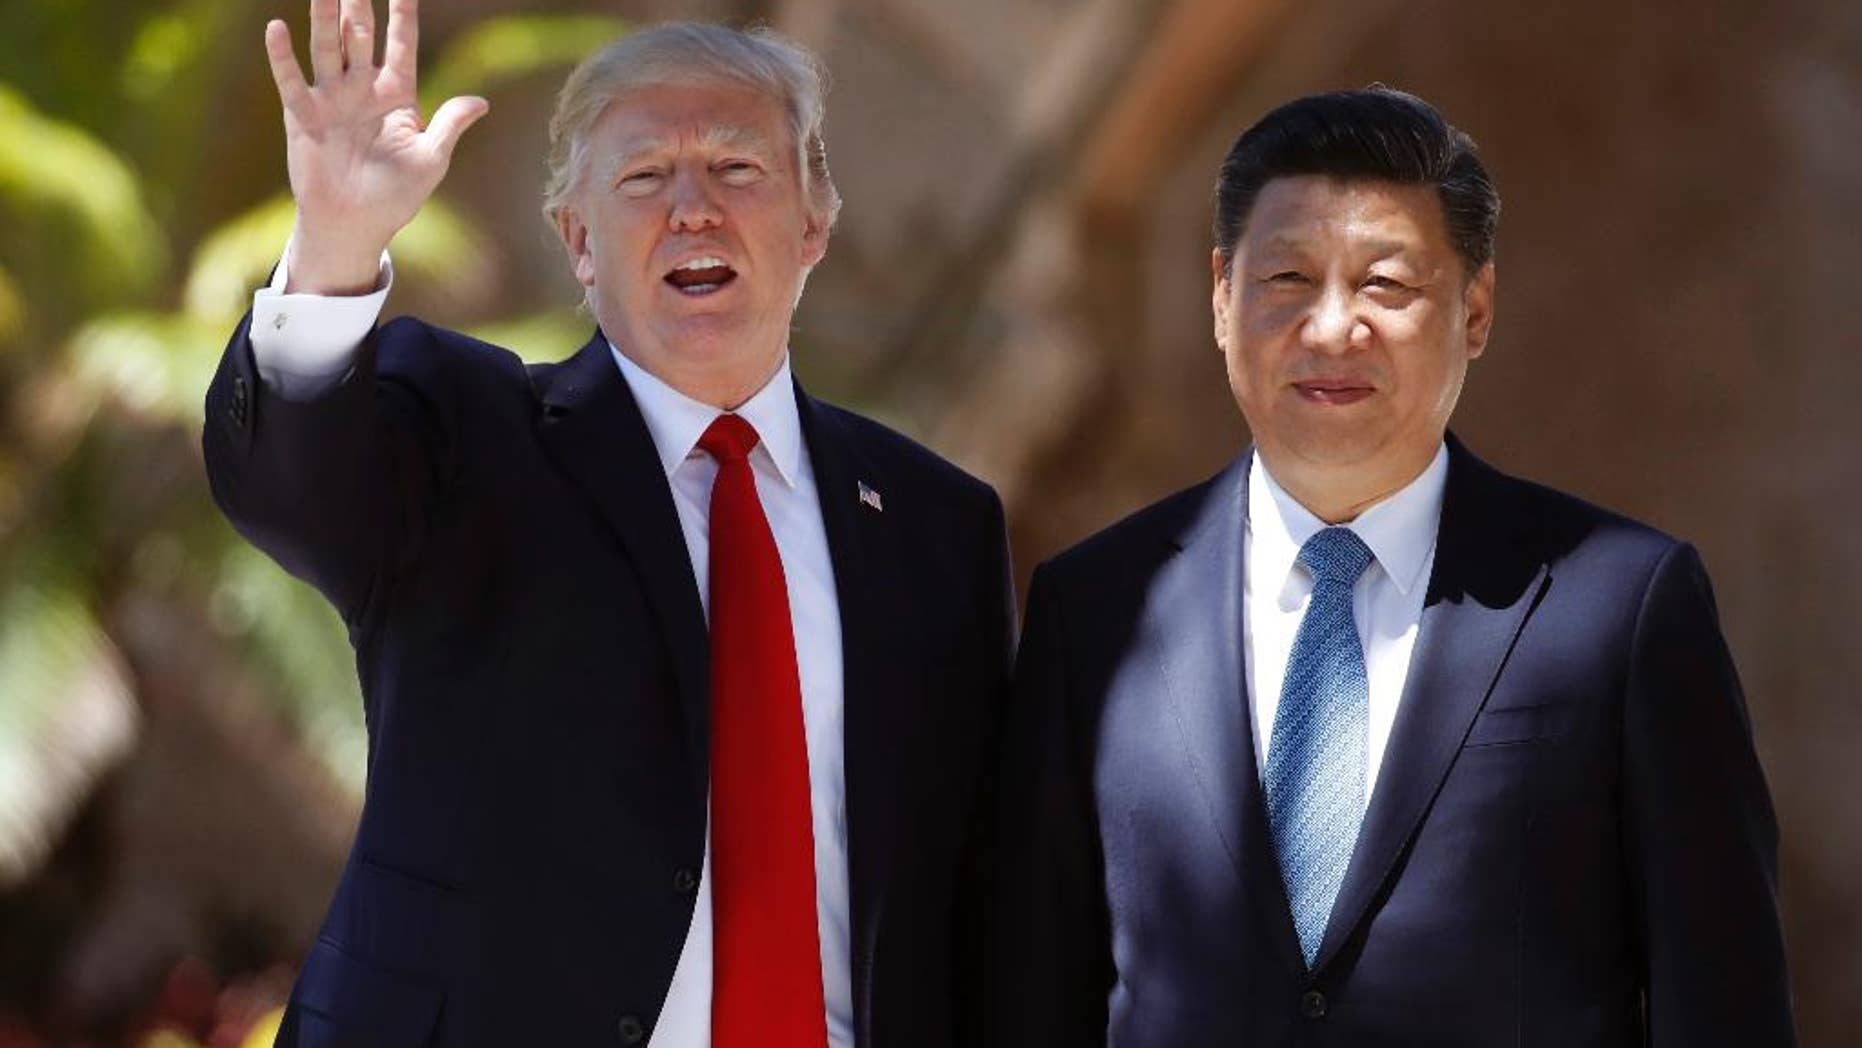 """FILE - In this Friday, April 7, 2017, file photo, U.S. President Donald Trump, left, and Chinese President Xi Jinping pause for photographs at Mar-a-Lago in Palm Beach, Fla. North Korea often marks significant dates by displaying military capability, and South Korean officials say there's a chance the country will conduct its sixth nuclear test or its maiden test launch of an ICBM around the founding anniversary of its military on Tuesday, April 25. Trump spoke by phone with both the Japanese and Chinese leaders Monday, April 24. China's official broadcaster CCTV quoted Xi telling Trump that China strongly opposed North Korea's nuclear weapons program and hoped """"all parties will exercise restraint and avoid aggravating the situation."""" (AP Photo/AlexBrandon, File)"""